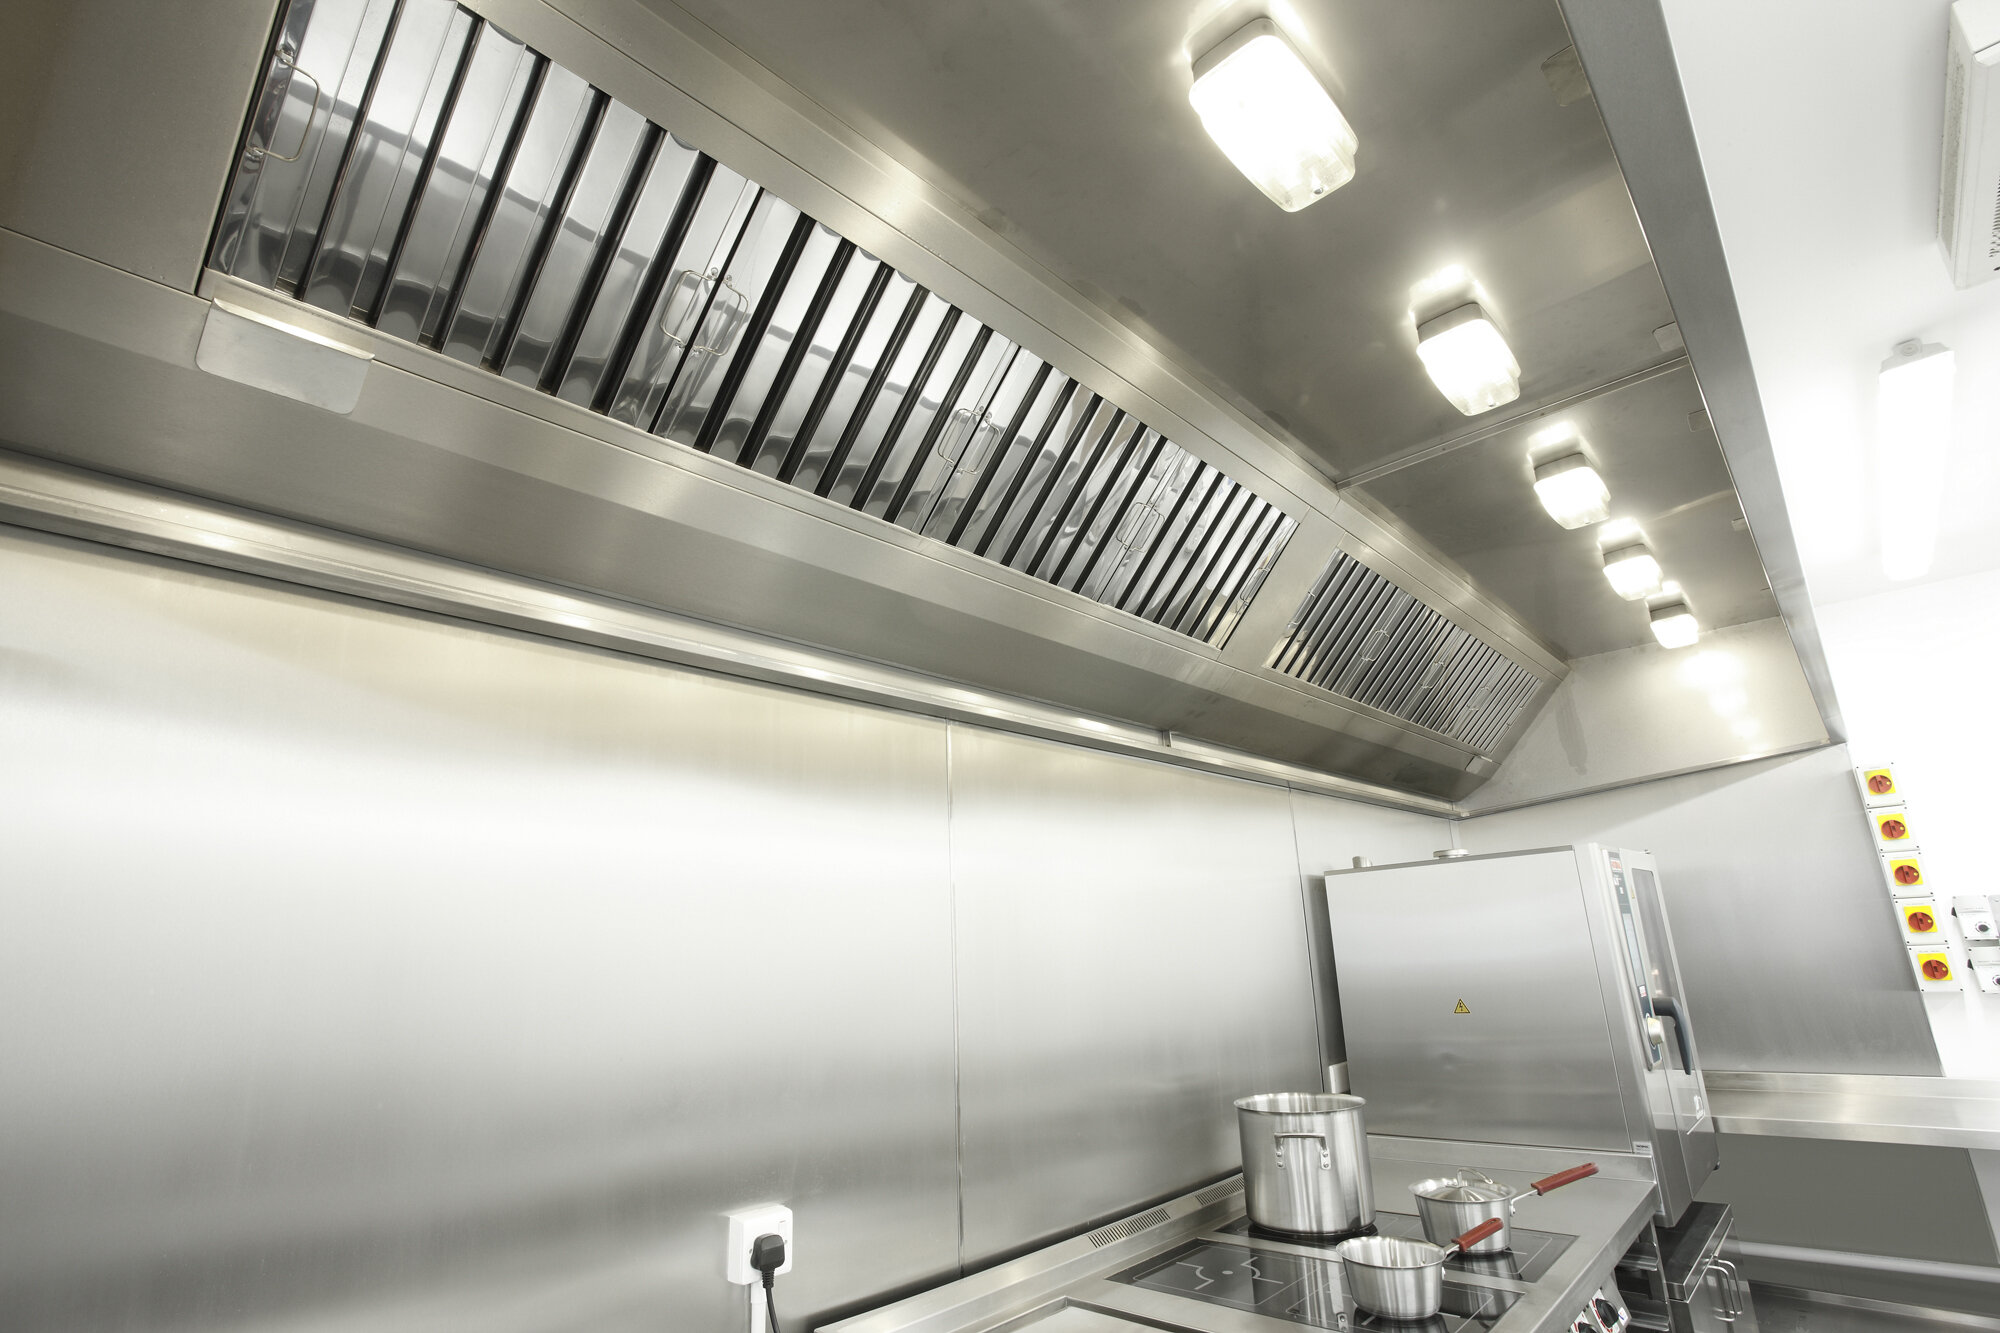 Target-Catering-Extractor-Canopy-Design.jpg